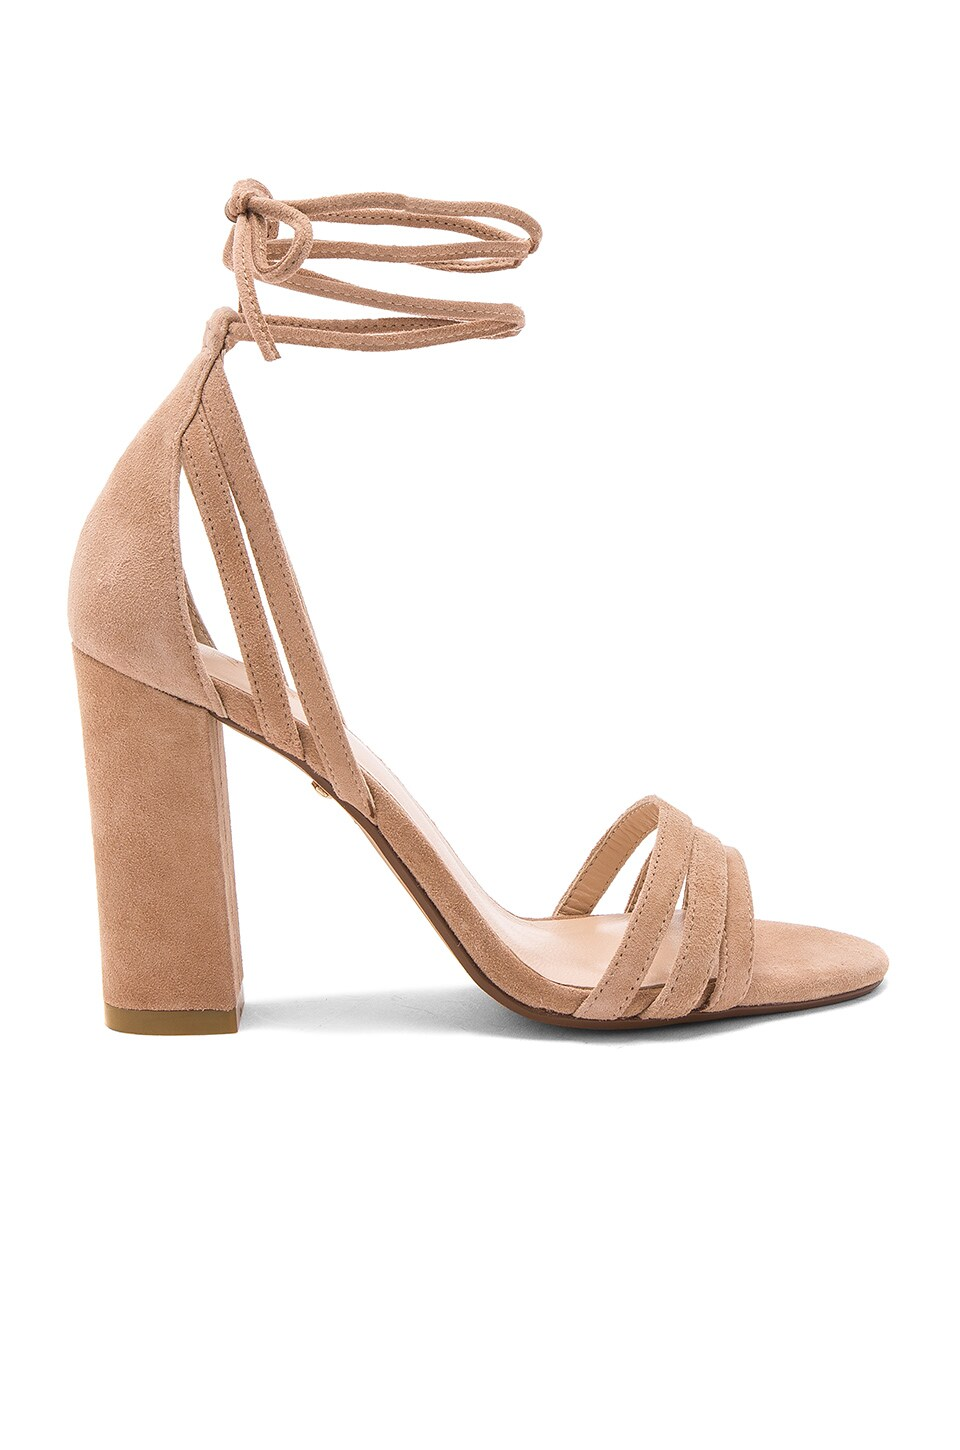 RAYE Barton Heel in Tan